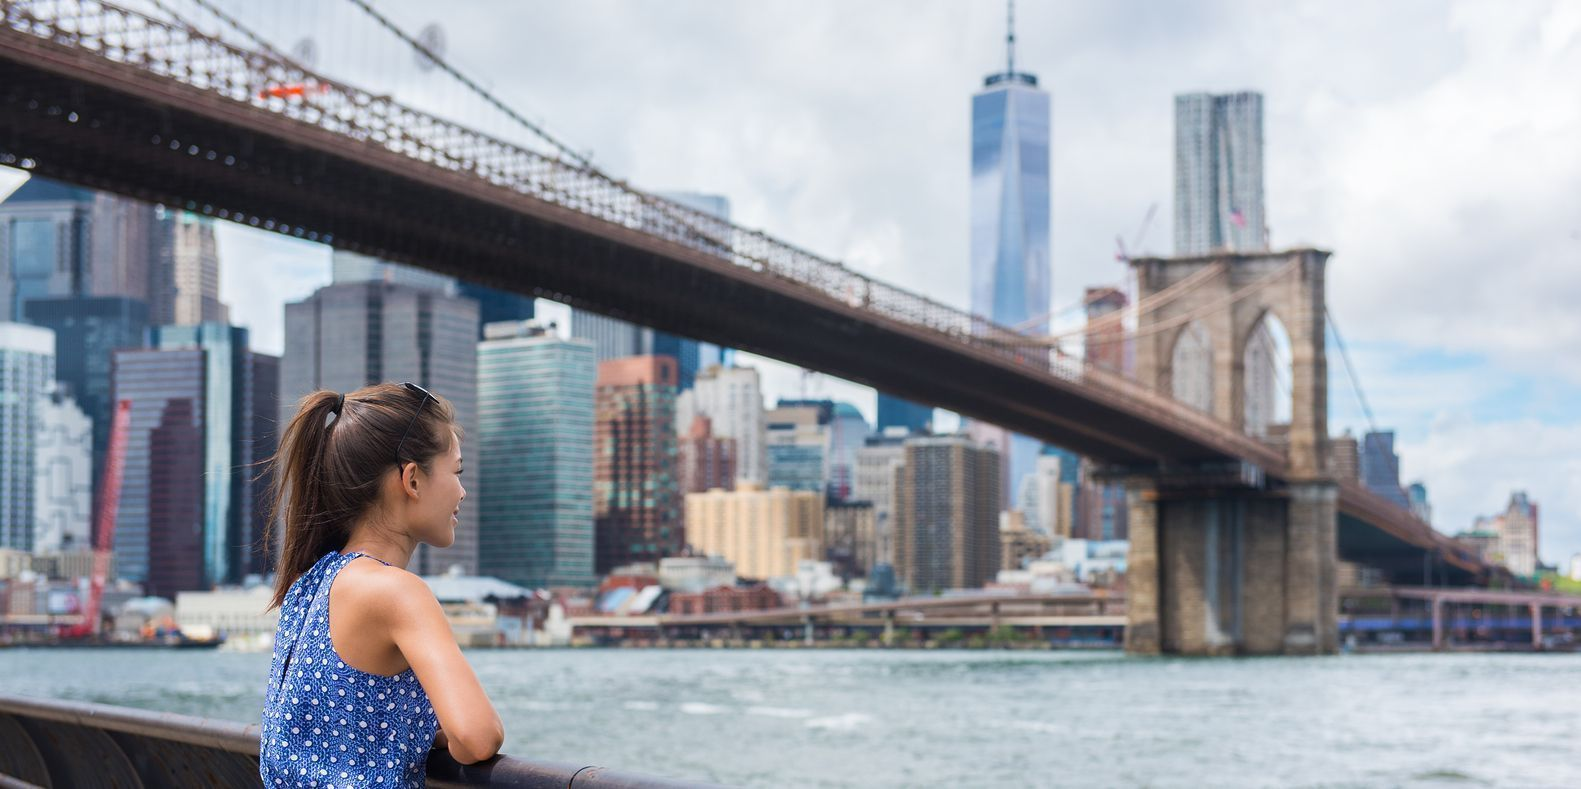 bigstock-New-York-city-urban-woman-enjo-120907523.jpg